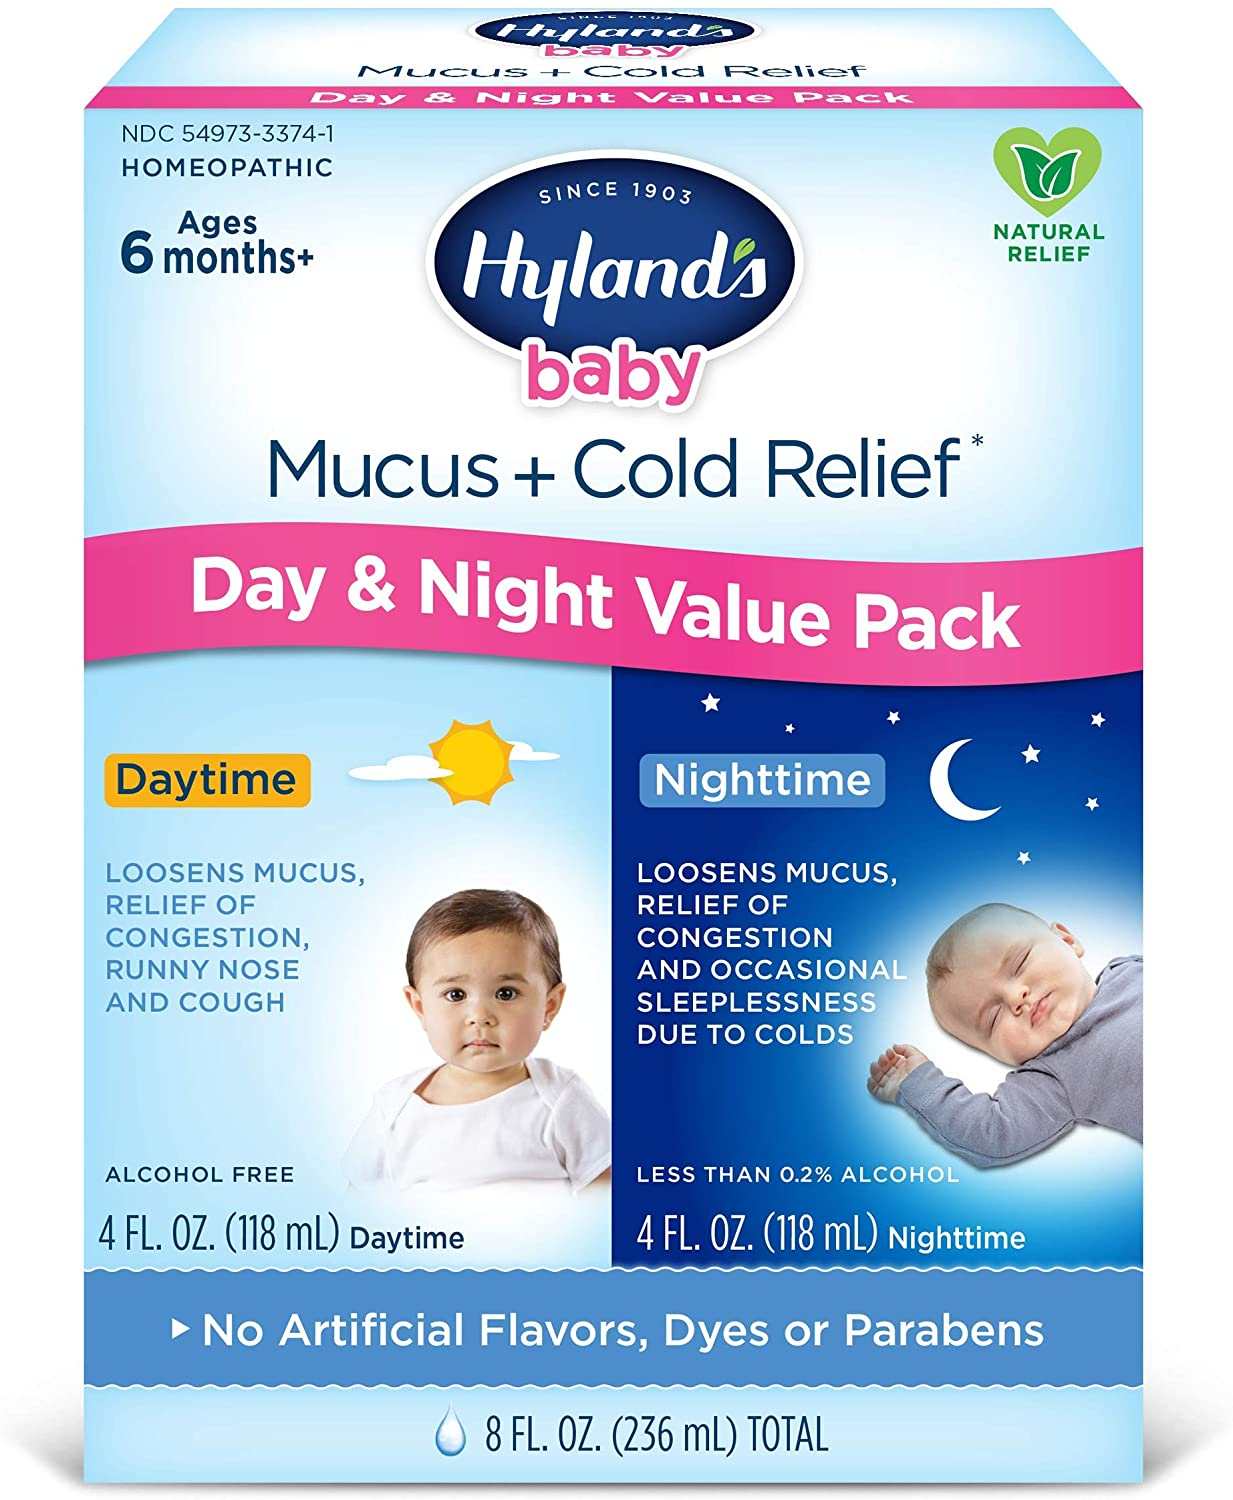 Cold Cough Medicine Dose For Babies Aged 4 Months?